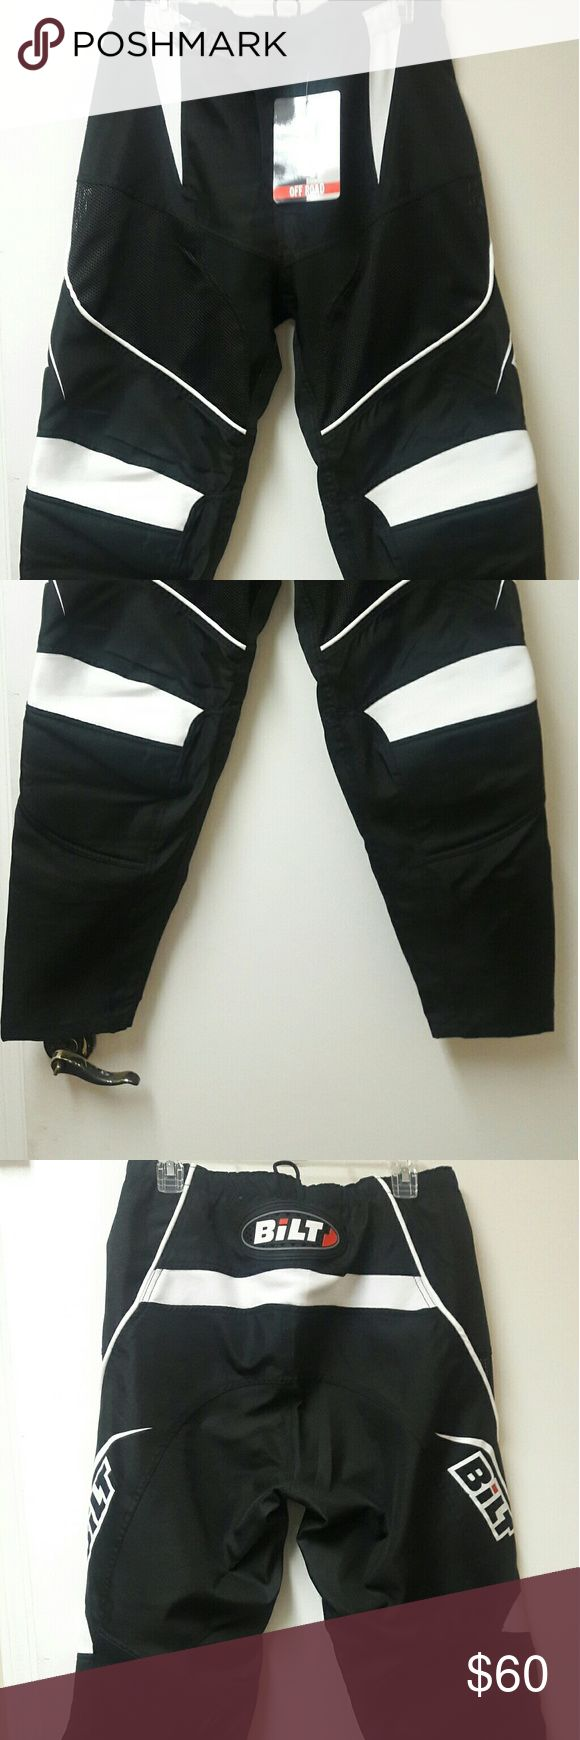 OFF ROAD MOTORCYCLE PANTS Brand new with tags, ready for you to get them dirty Bilt Pants